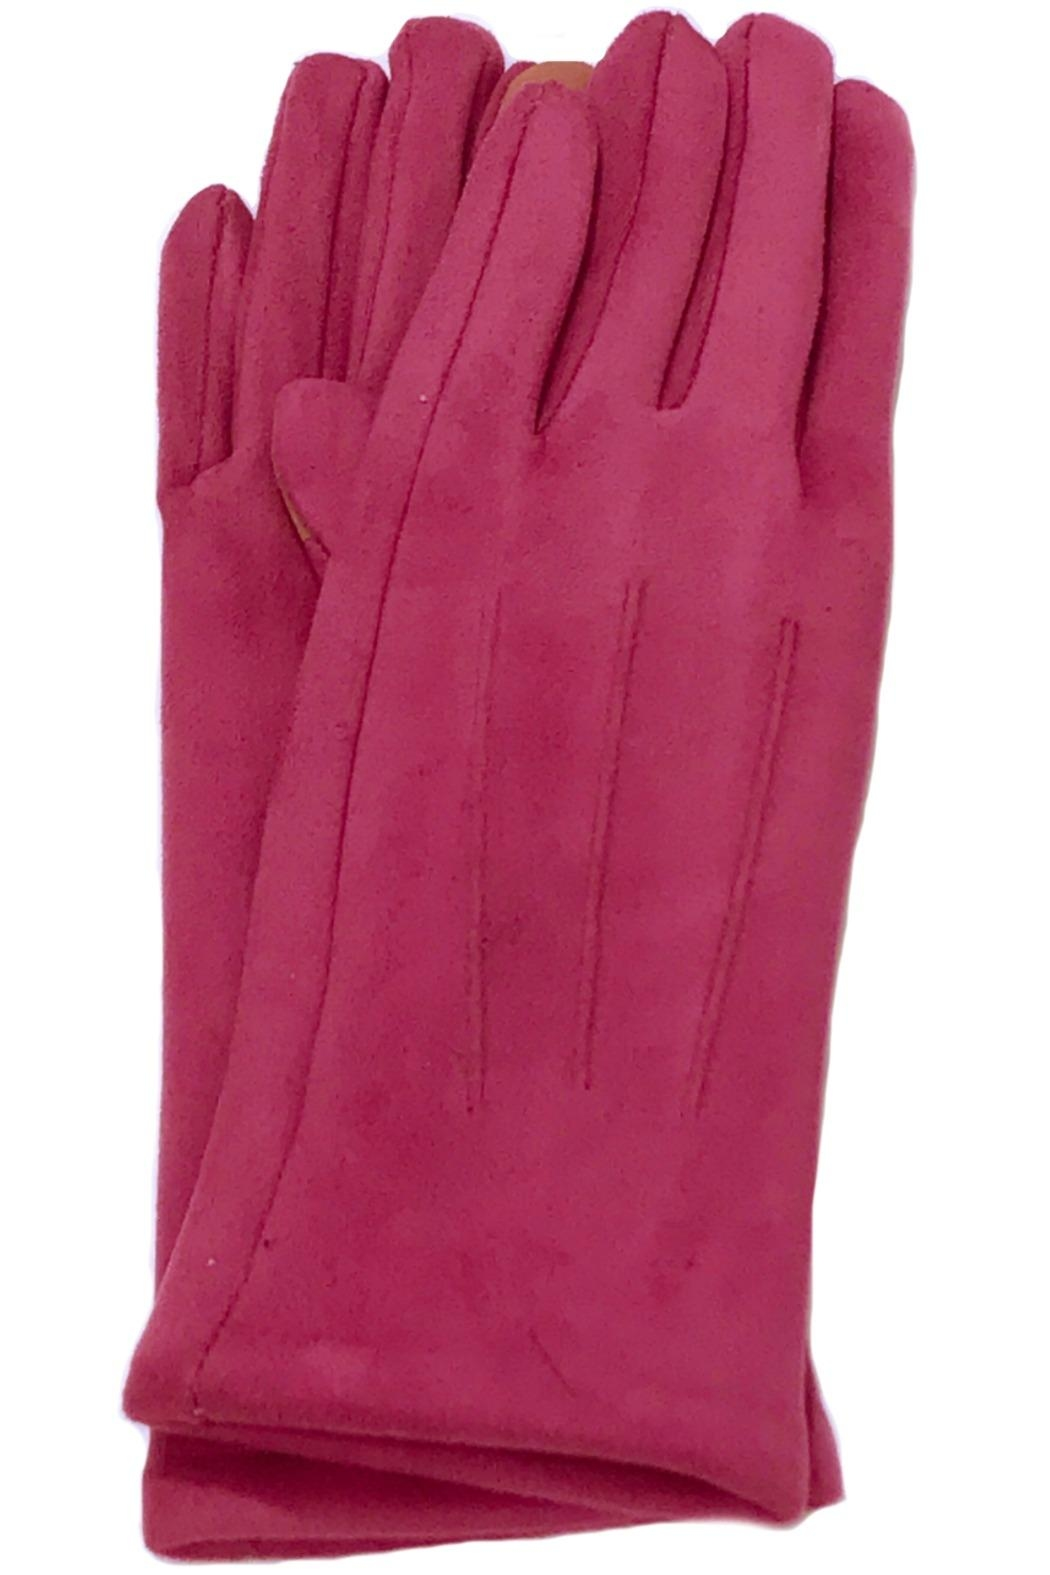 ANTONELLO SERIO Solid Knit Gloves - Main Image